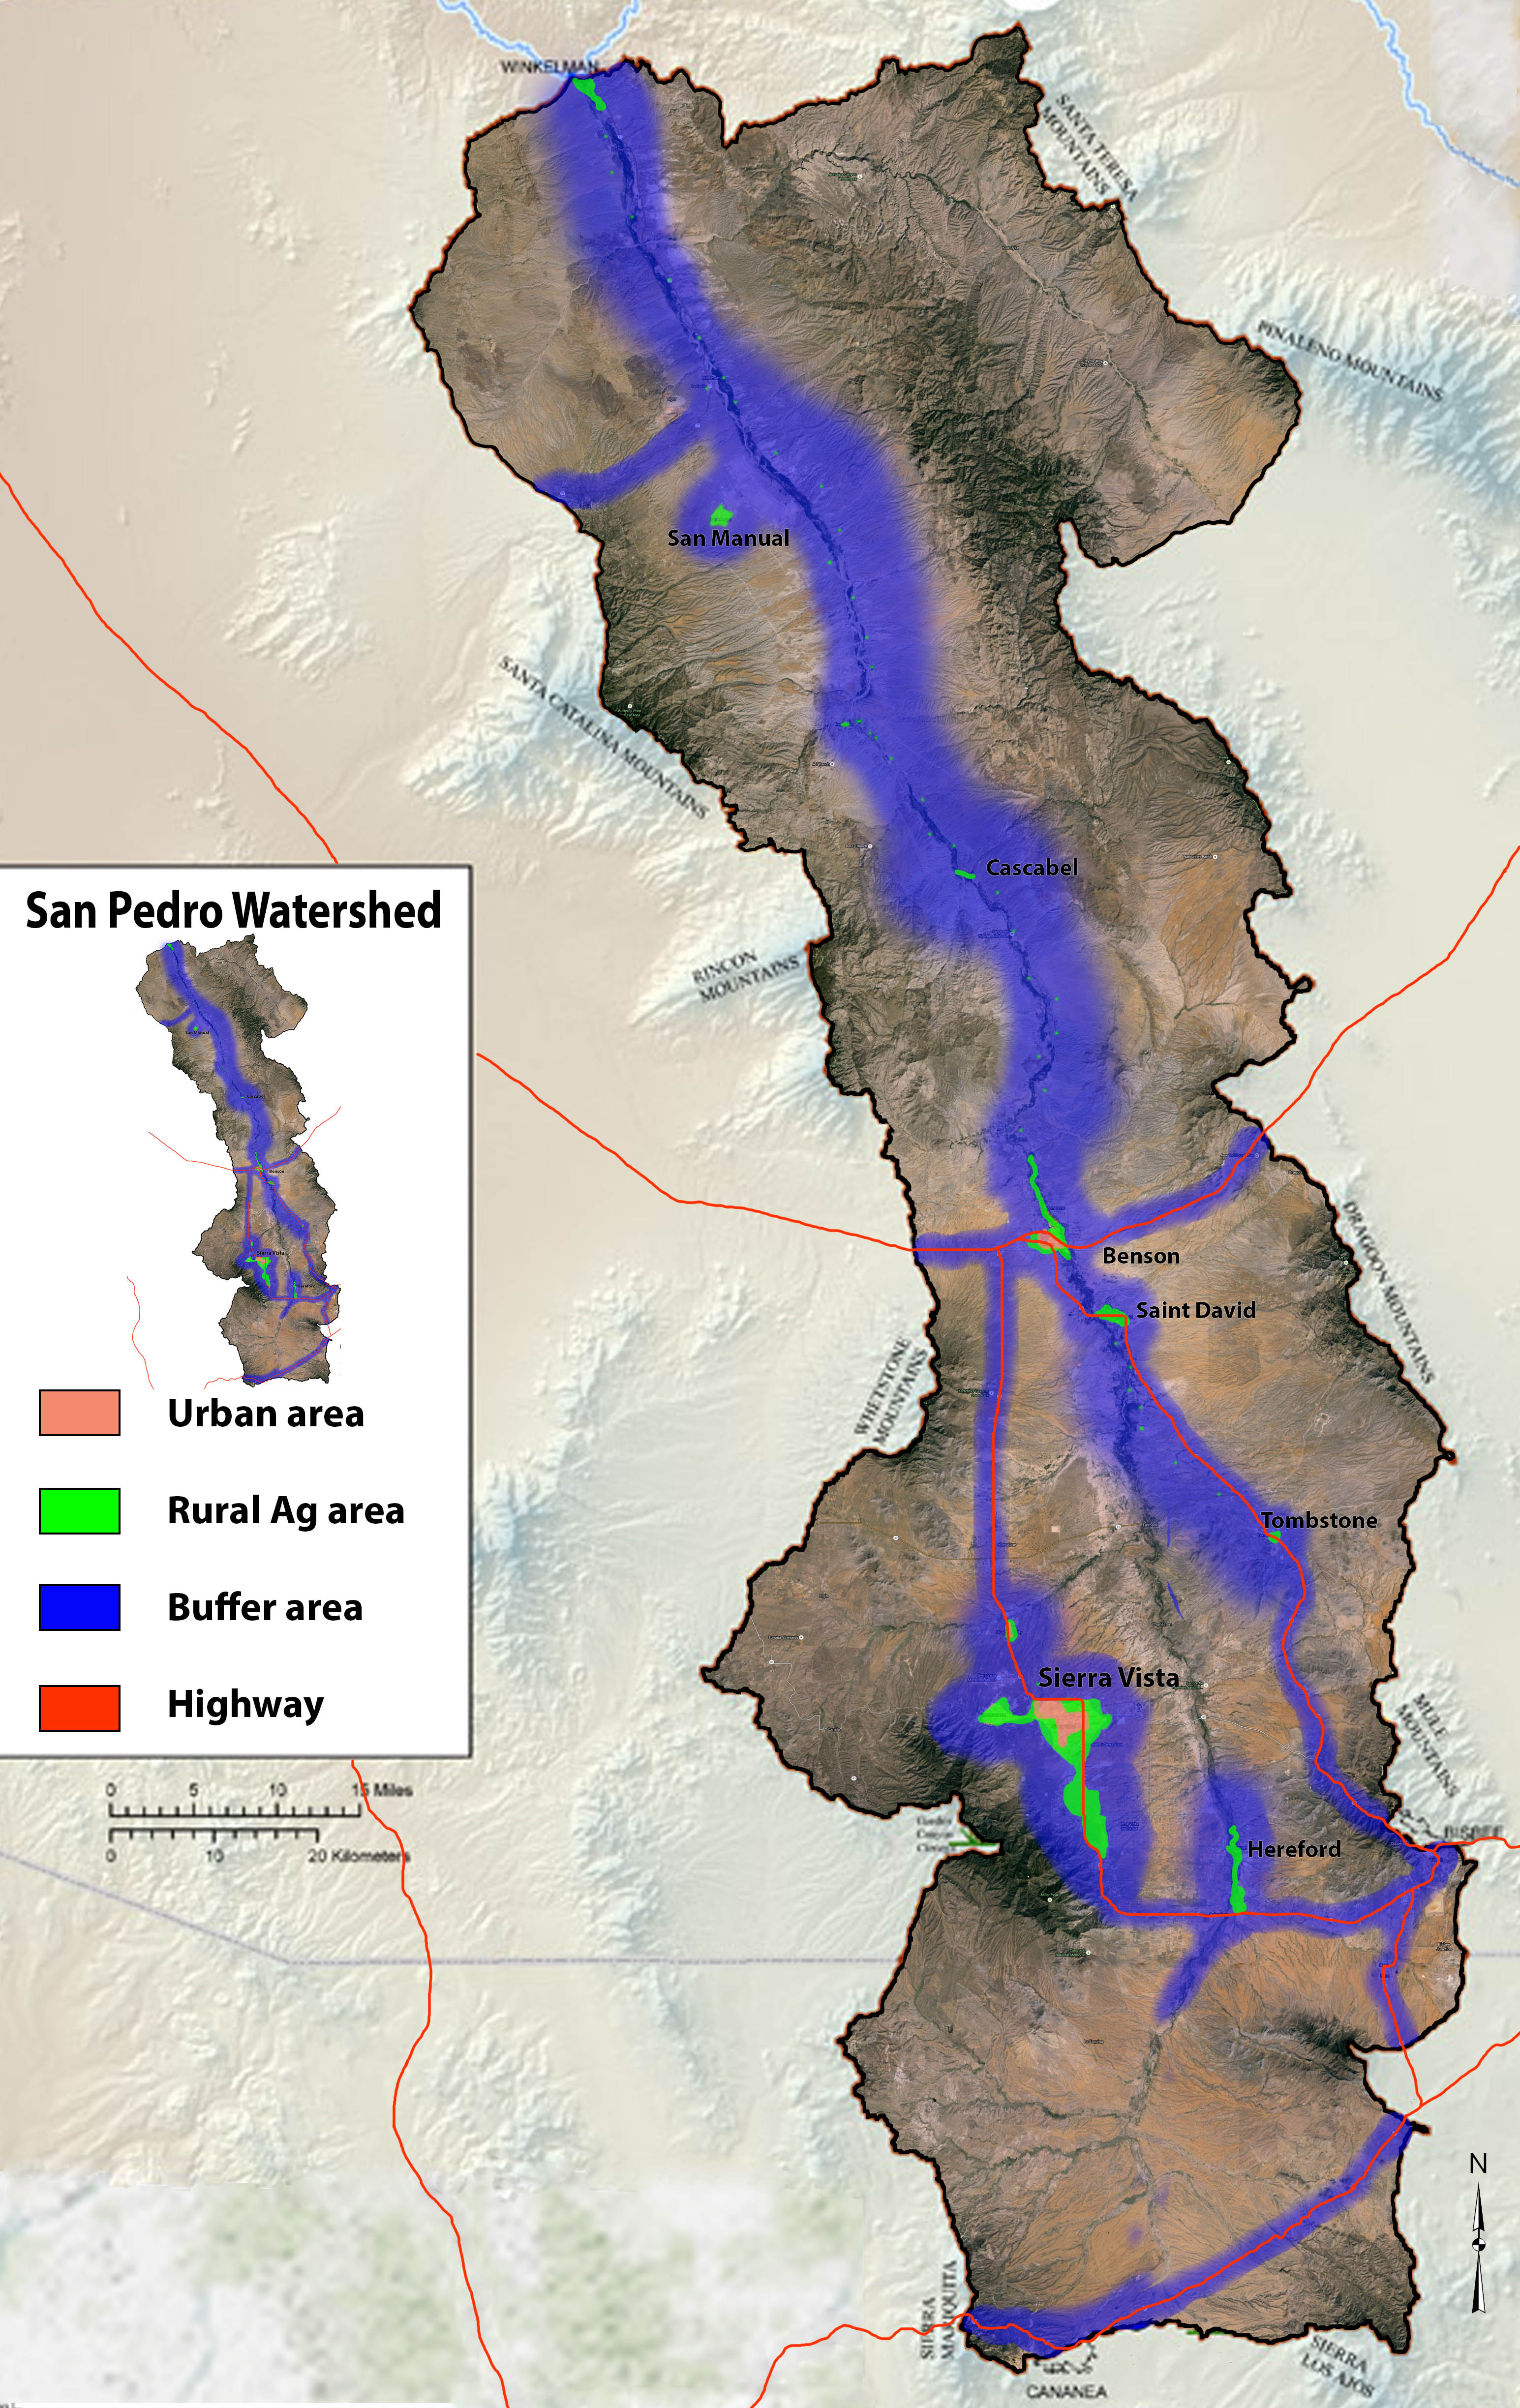 SANTA CRUZ WATERSHED